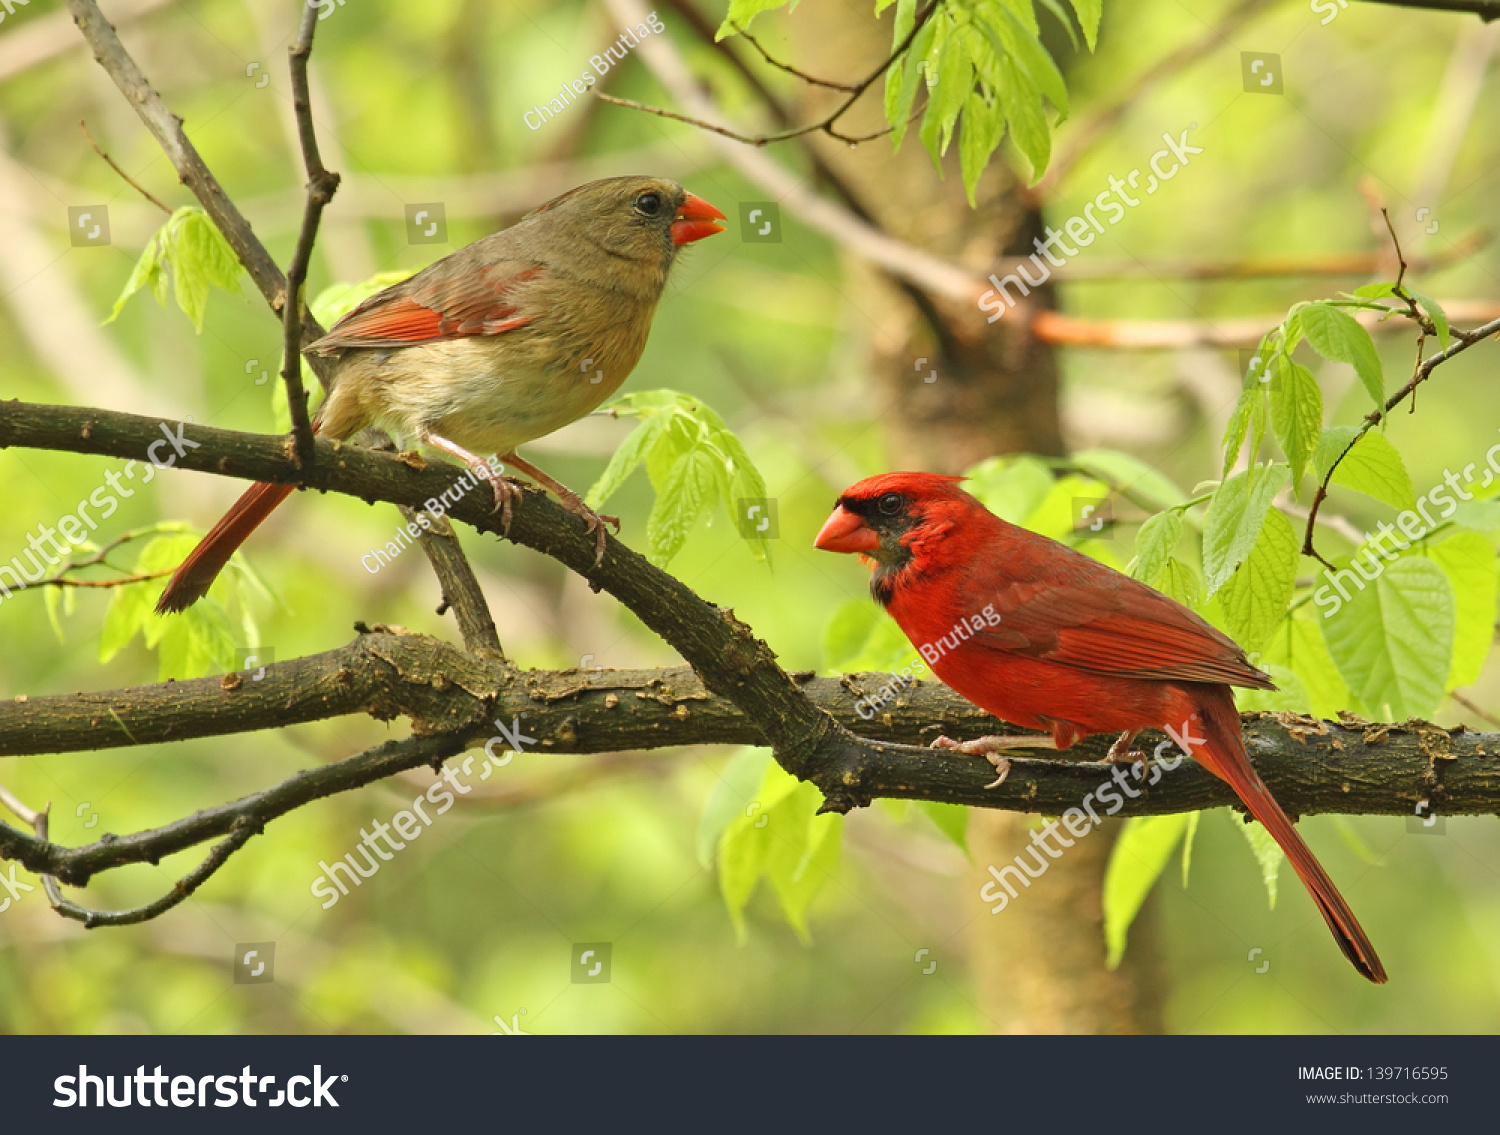 Male And Female Northern Cardinal, Cardinalis Cardinalis, Perched On A Tree Branch Stock Photo 139716595 : Shutterstock